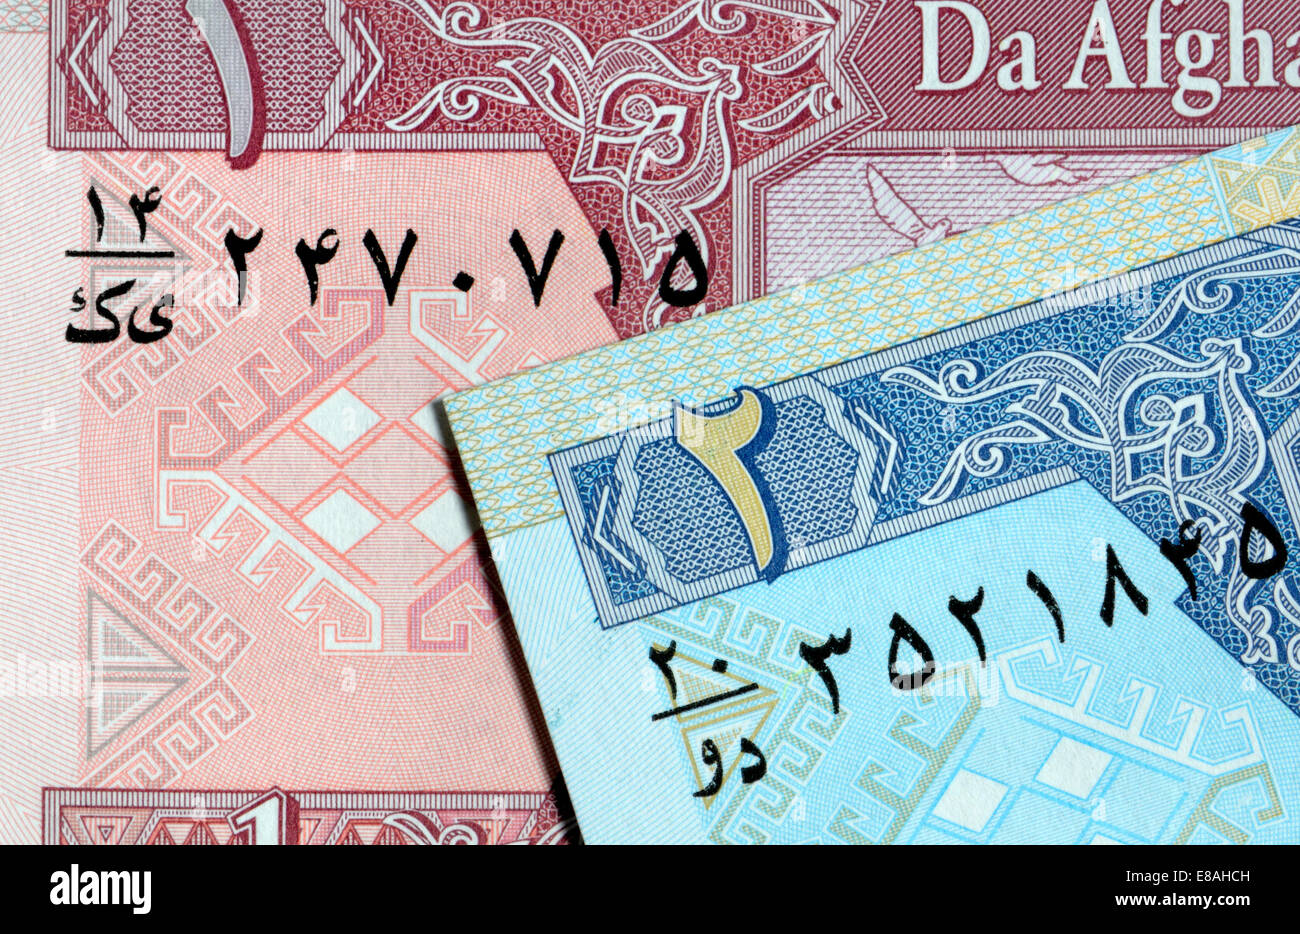 Detail from an Afghan banknote showing Arabic script and numerals - Stock Image